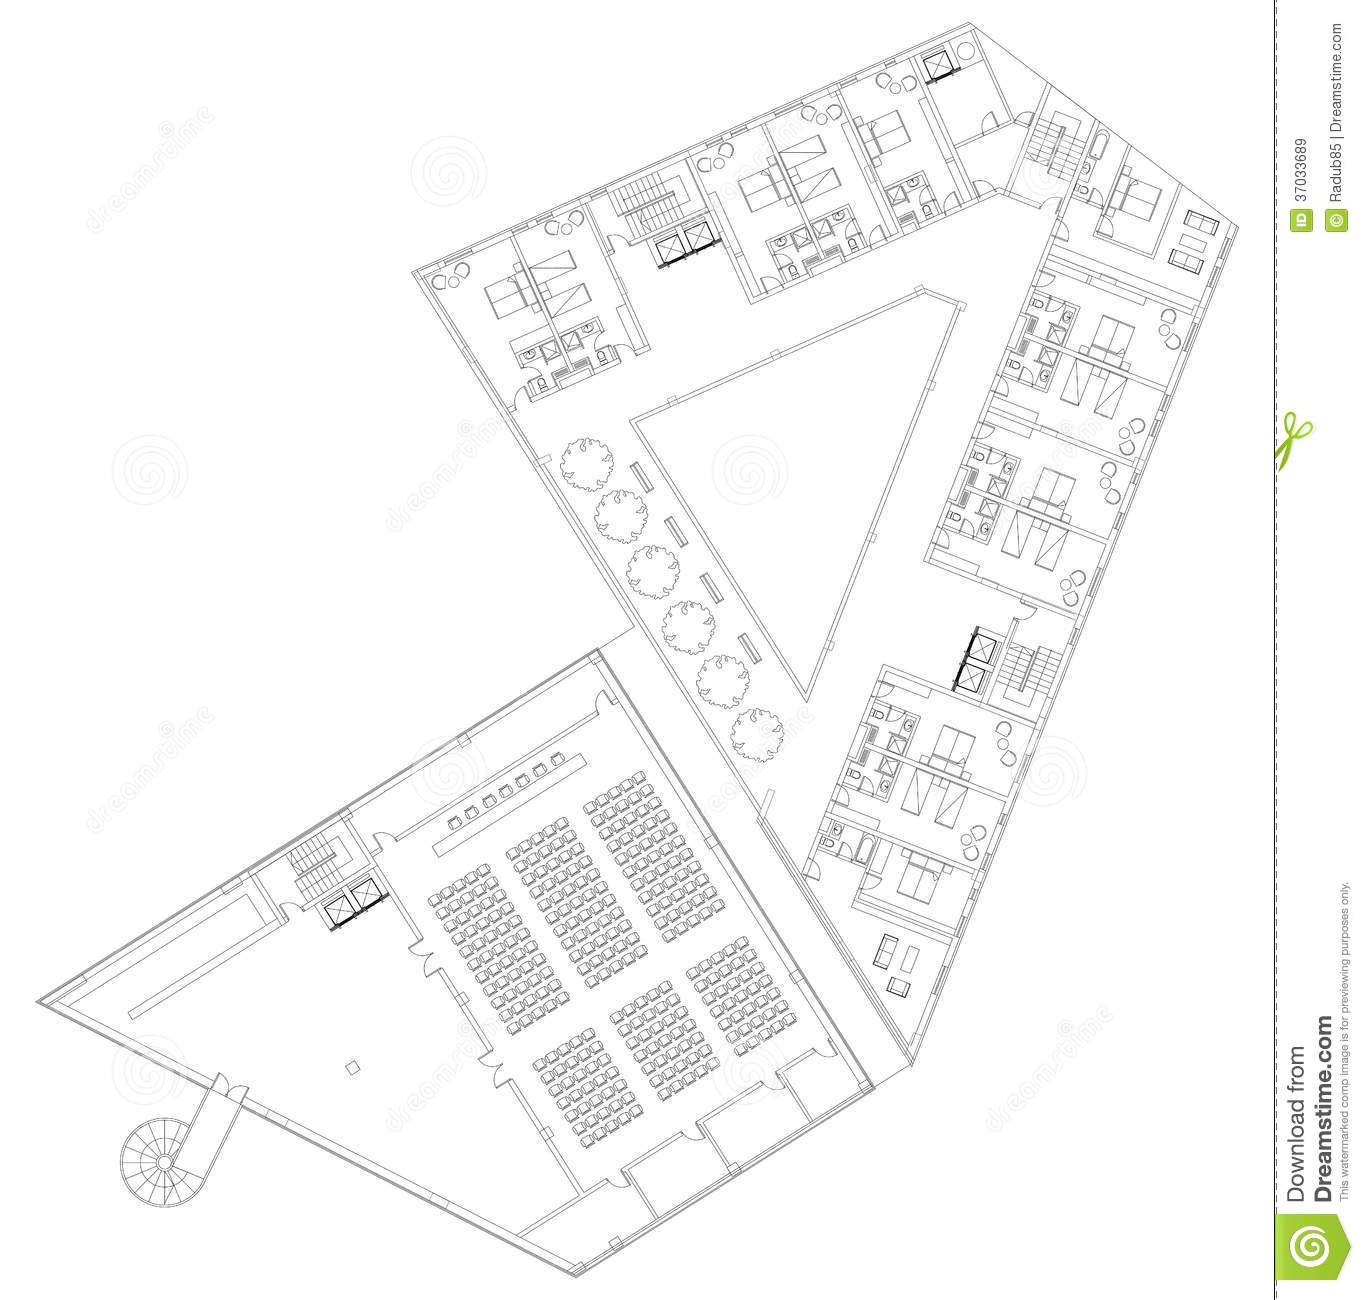 Modern Hotel Floor Architectural Plan Royalty Free Stock